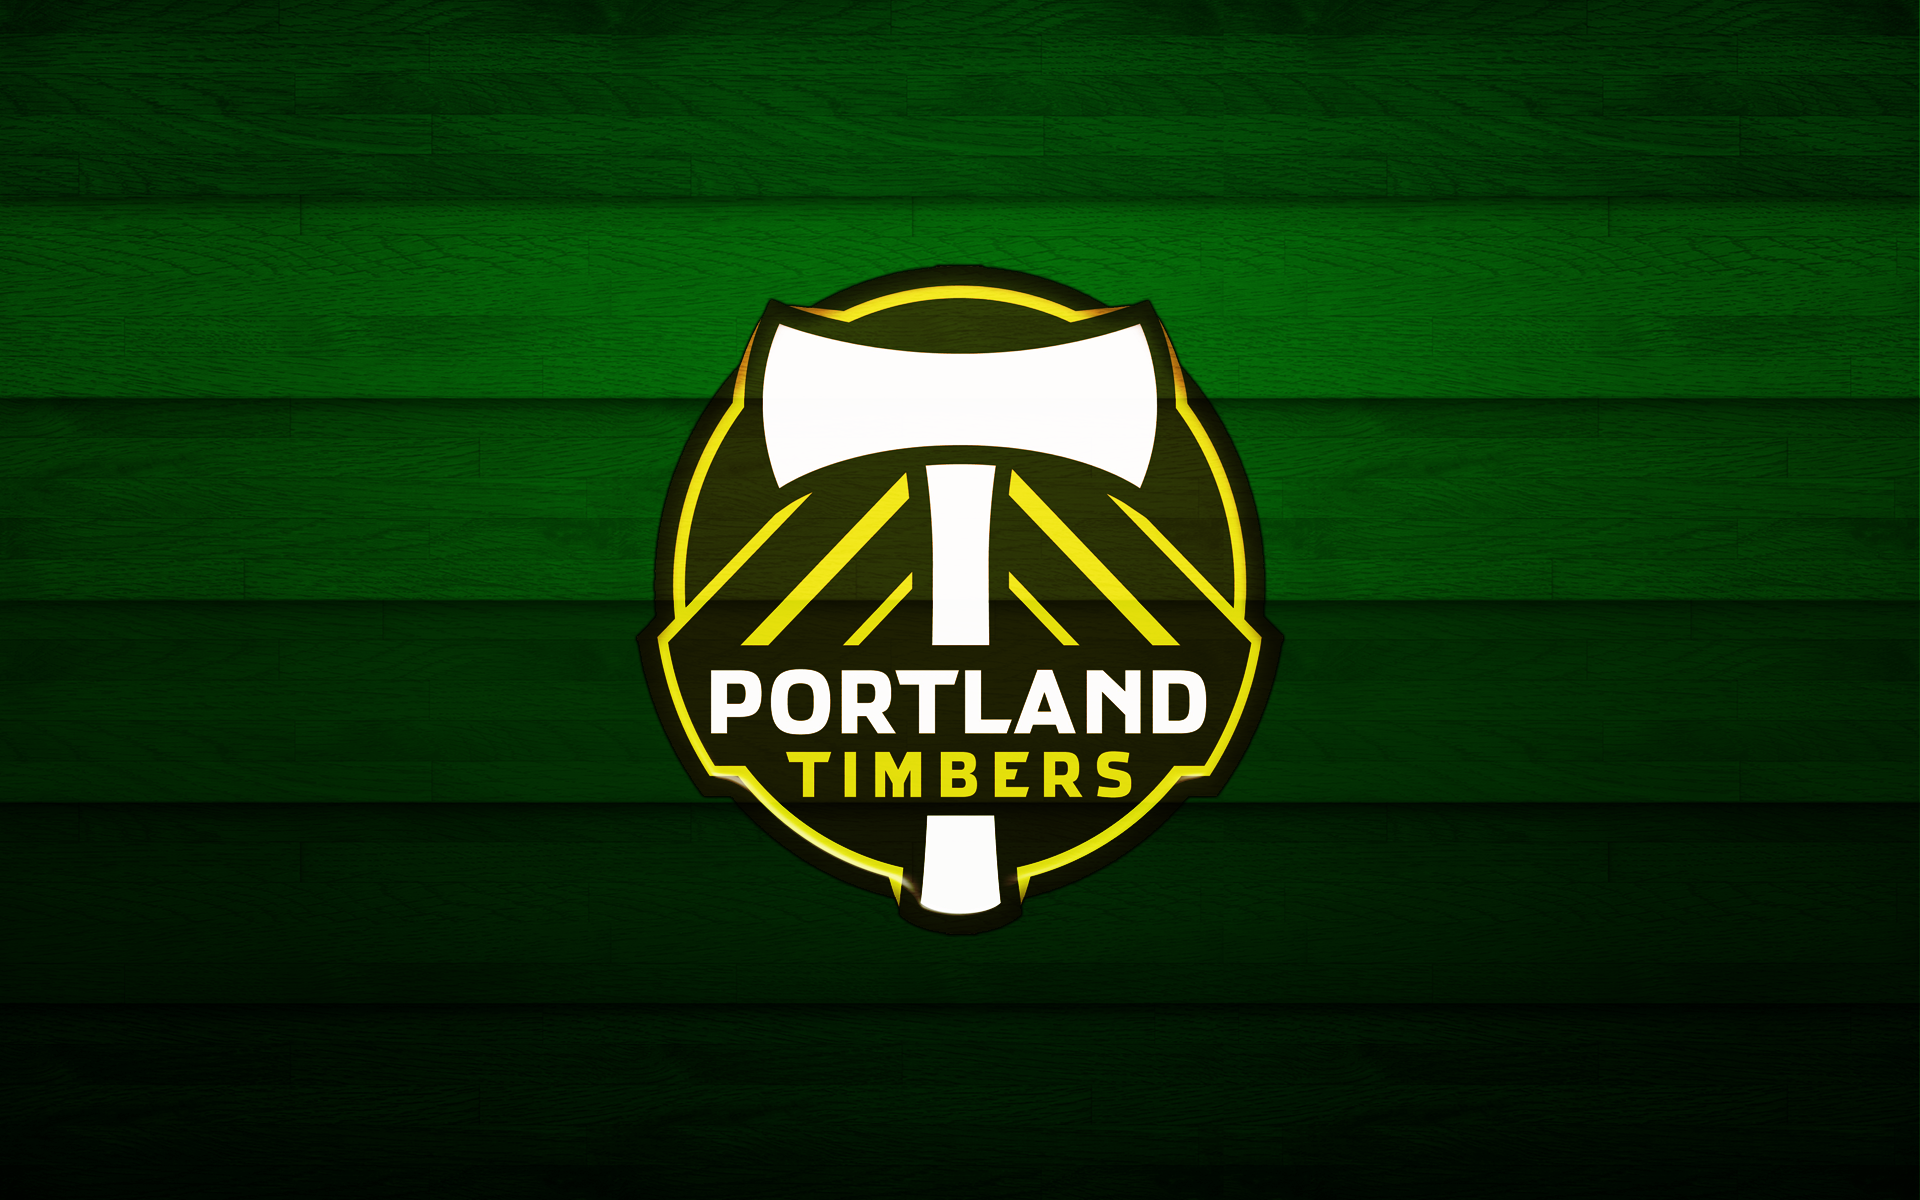 1920x1200 - Portland Timbers Wallpapers 16